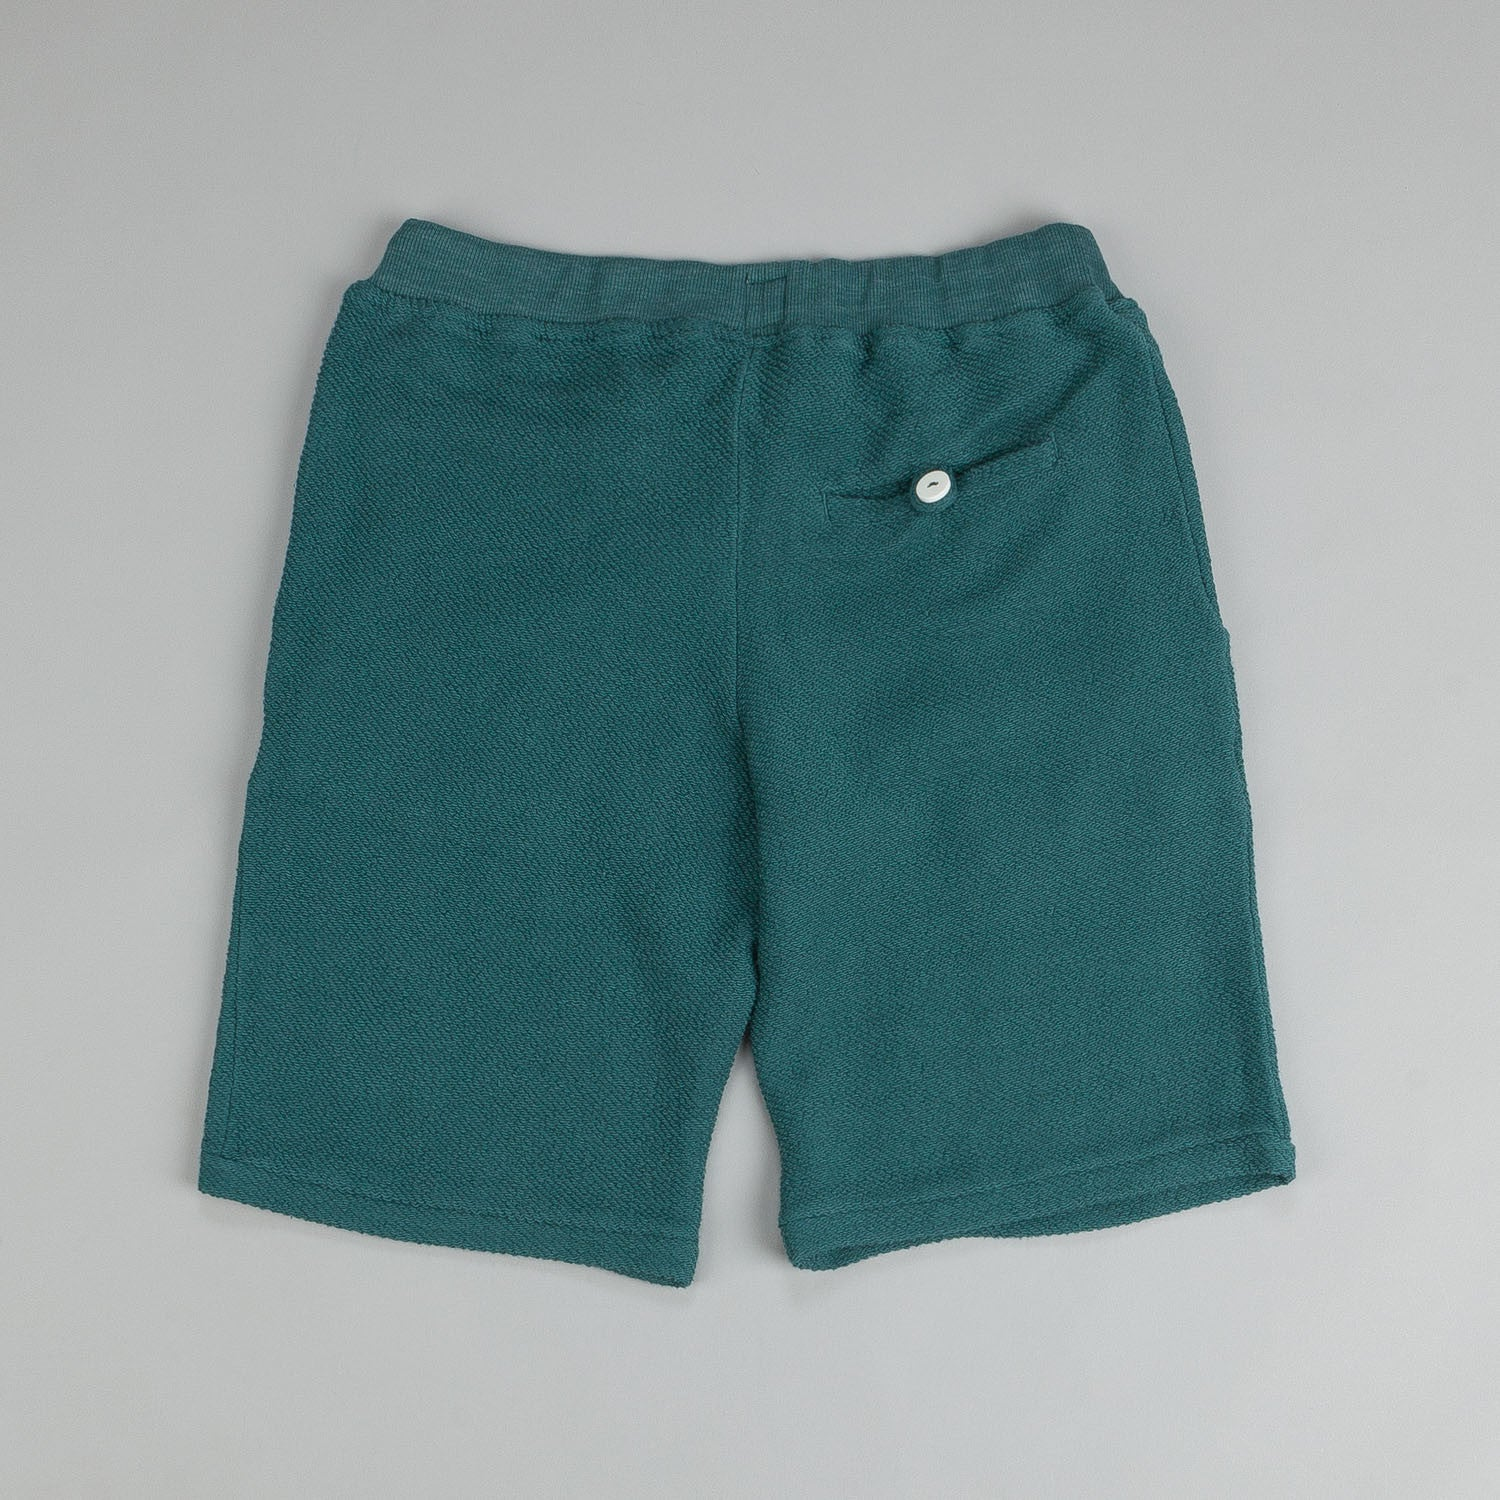 Orsman Park Shorts Deep Lake Green